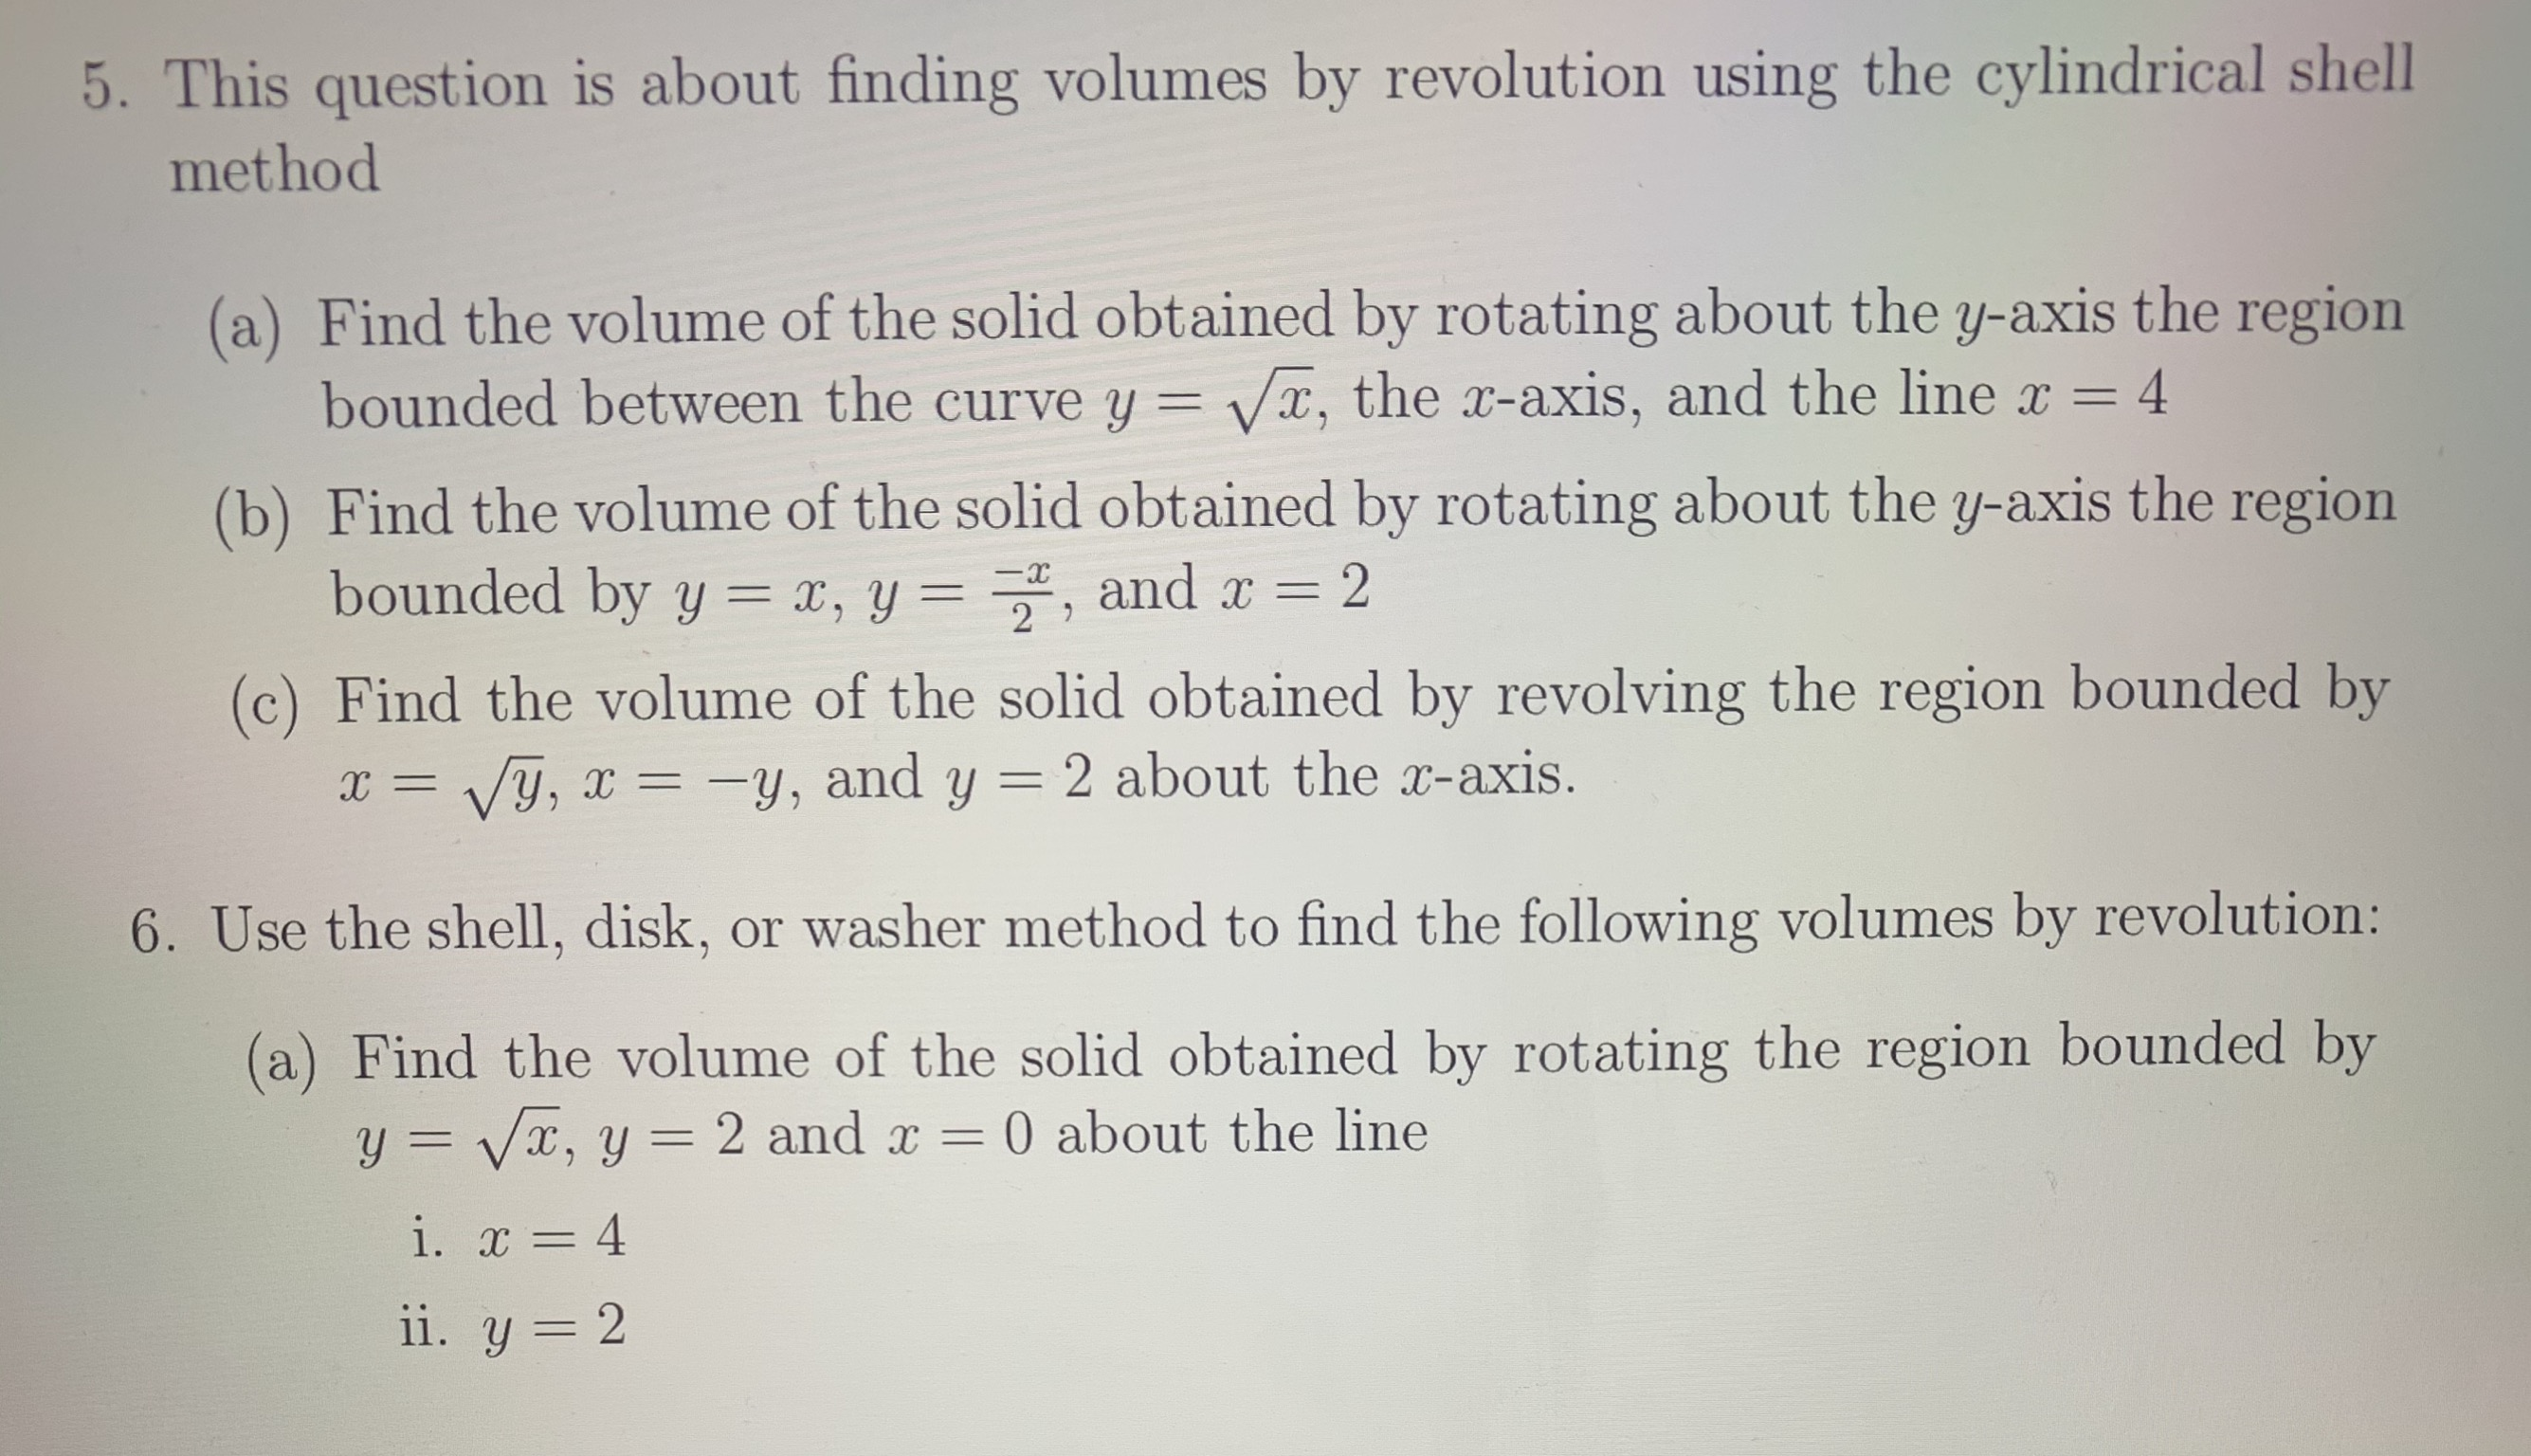 5. This question is about finding volumes by revolution using the cylindrical shell method (a) Find the volume of the solid obtained by rotating about the y-axis the region bounded between the curve y = x, the x-axis, and the line x 4 (b) Find the volume of the solid obtained by rotating about the y-axis the region bounded by y = x, y = , and x 2 2 (c) Find the volume of the solid obtained by revolving the region bounded by y, and y = 2 about the x-axis. Vy, 6. Use the shell, disk, or washer method to find the following volumes by revolution: (a) Find the volume of the solid obtained by rotating the region bounded by y=Vx, y 0 about the line 2 and x i. 4 ii. y 2